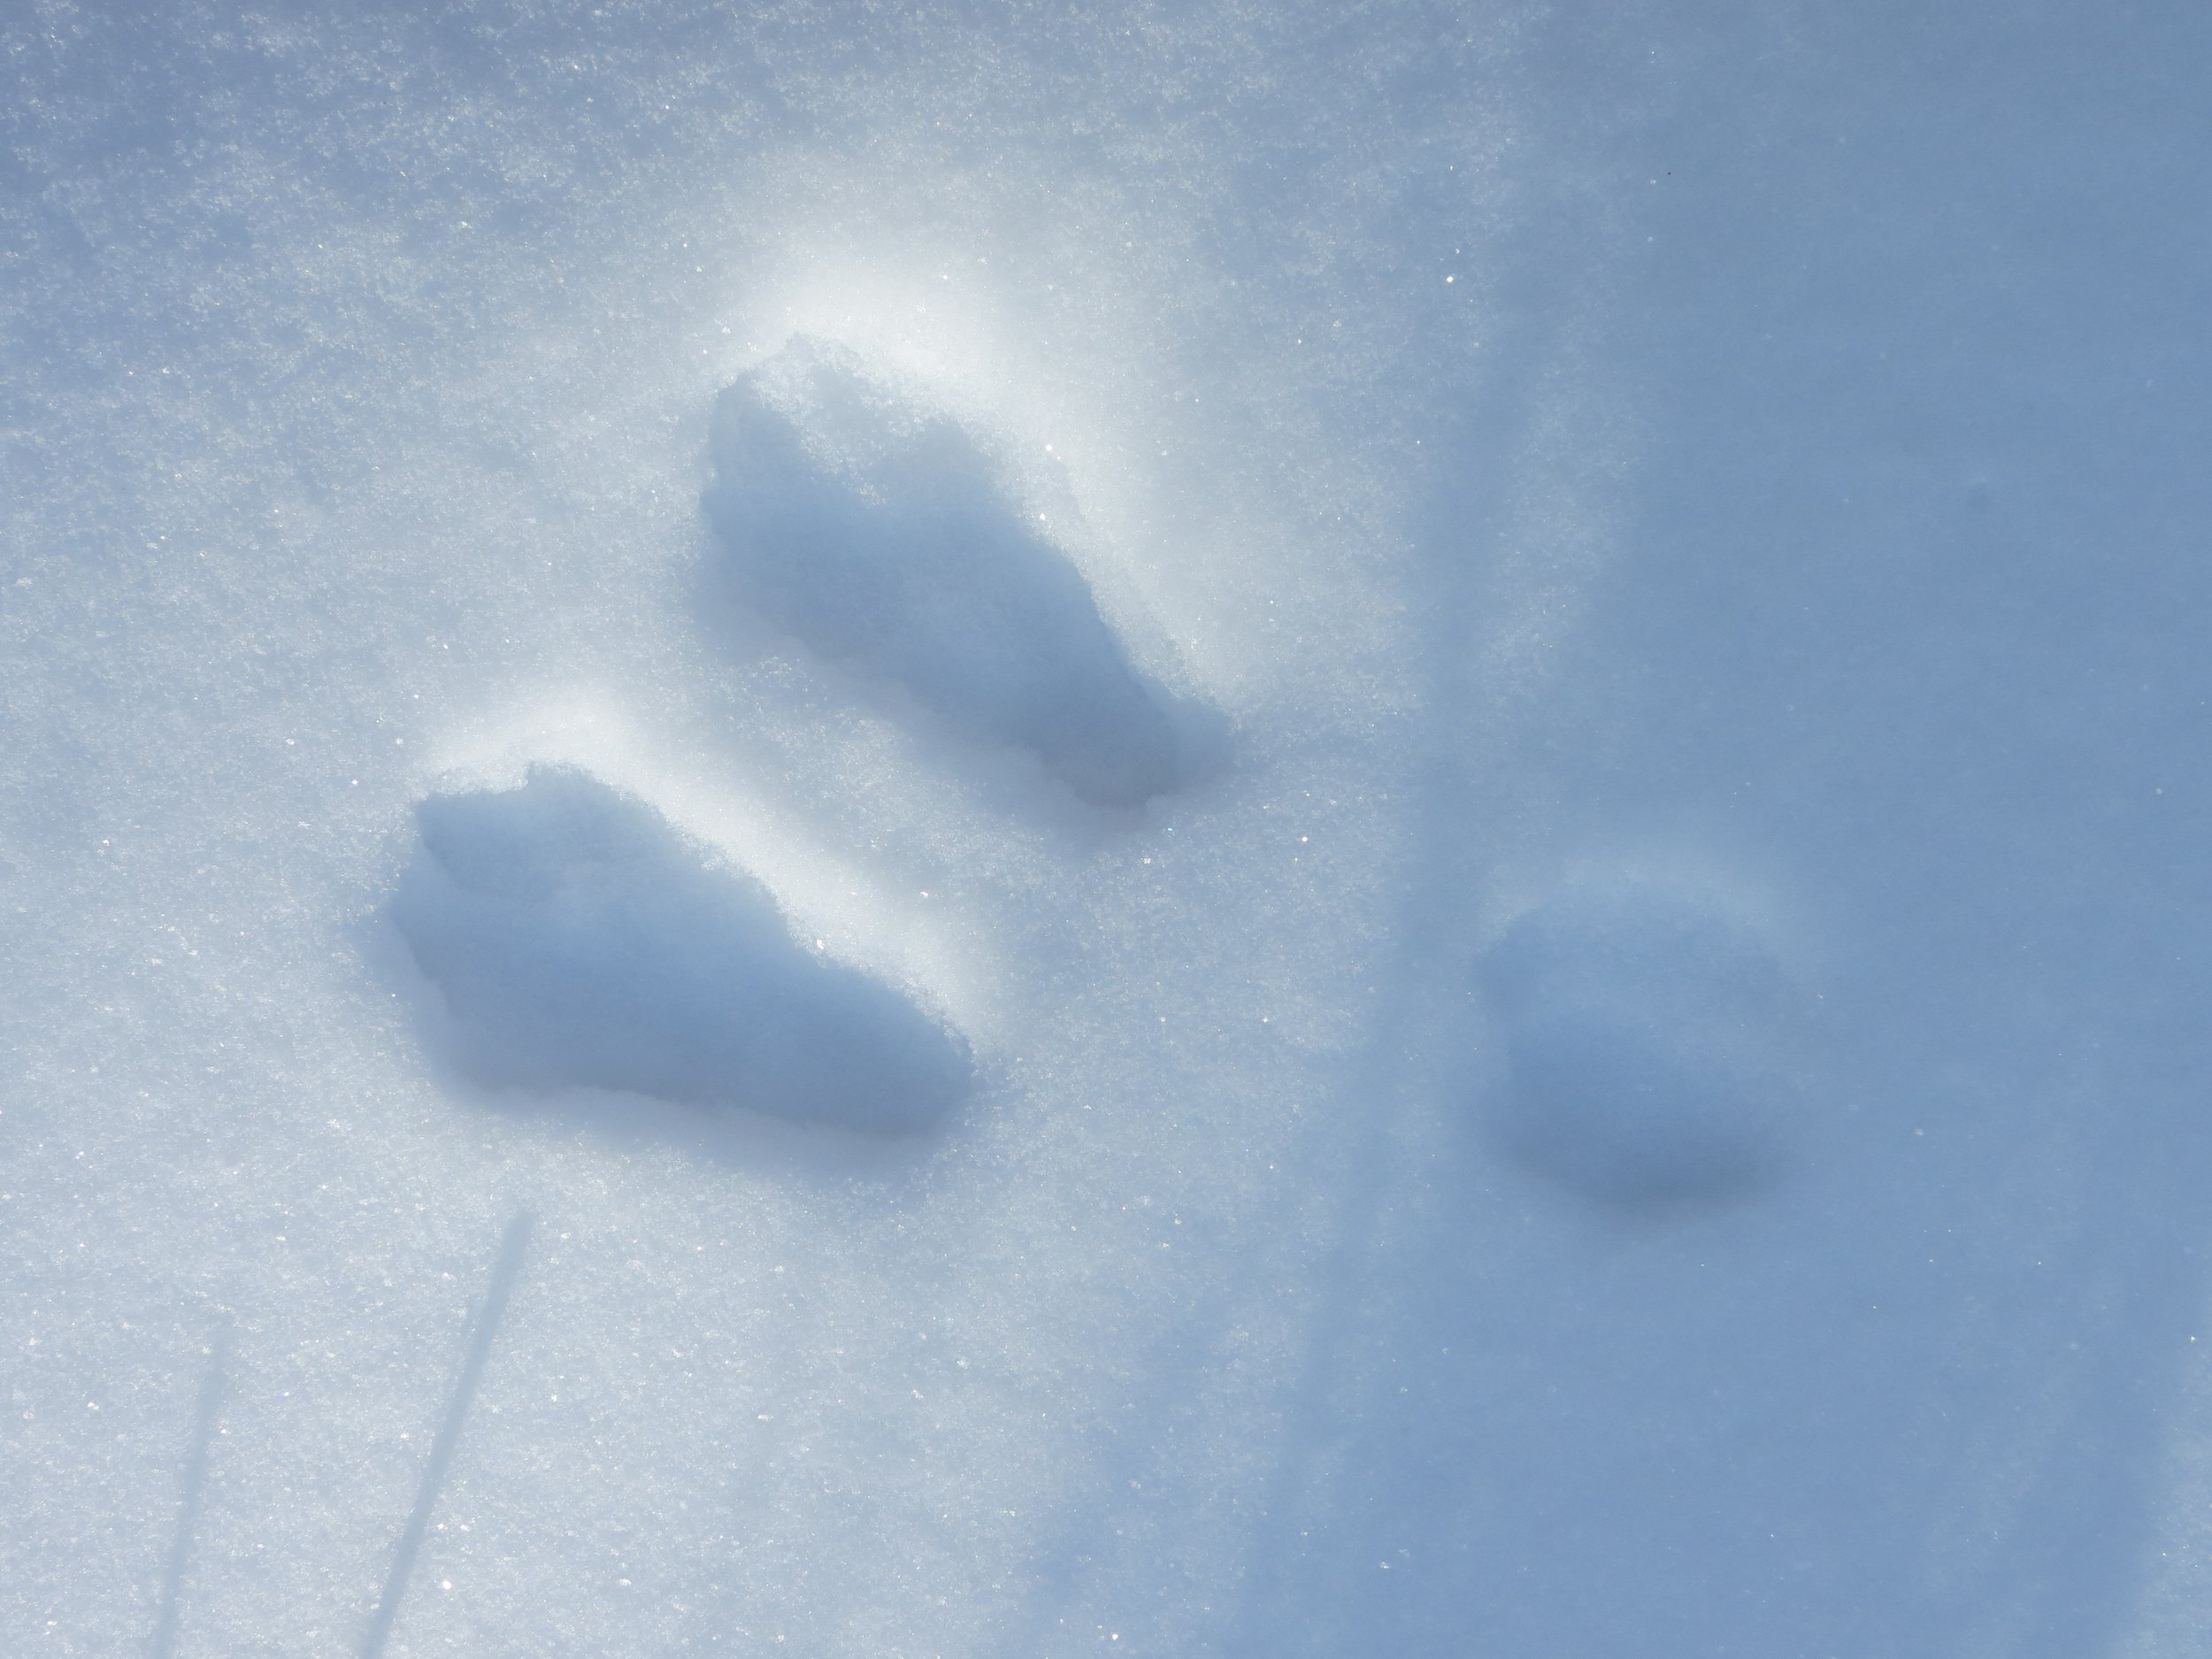 Snowshoe hare tracks feature large back feet and tiny front paws trailing behind as they hop forwards